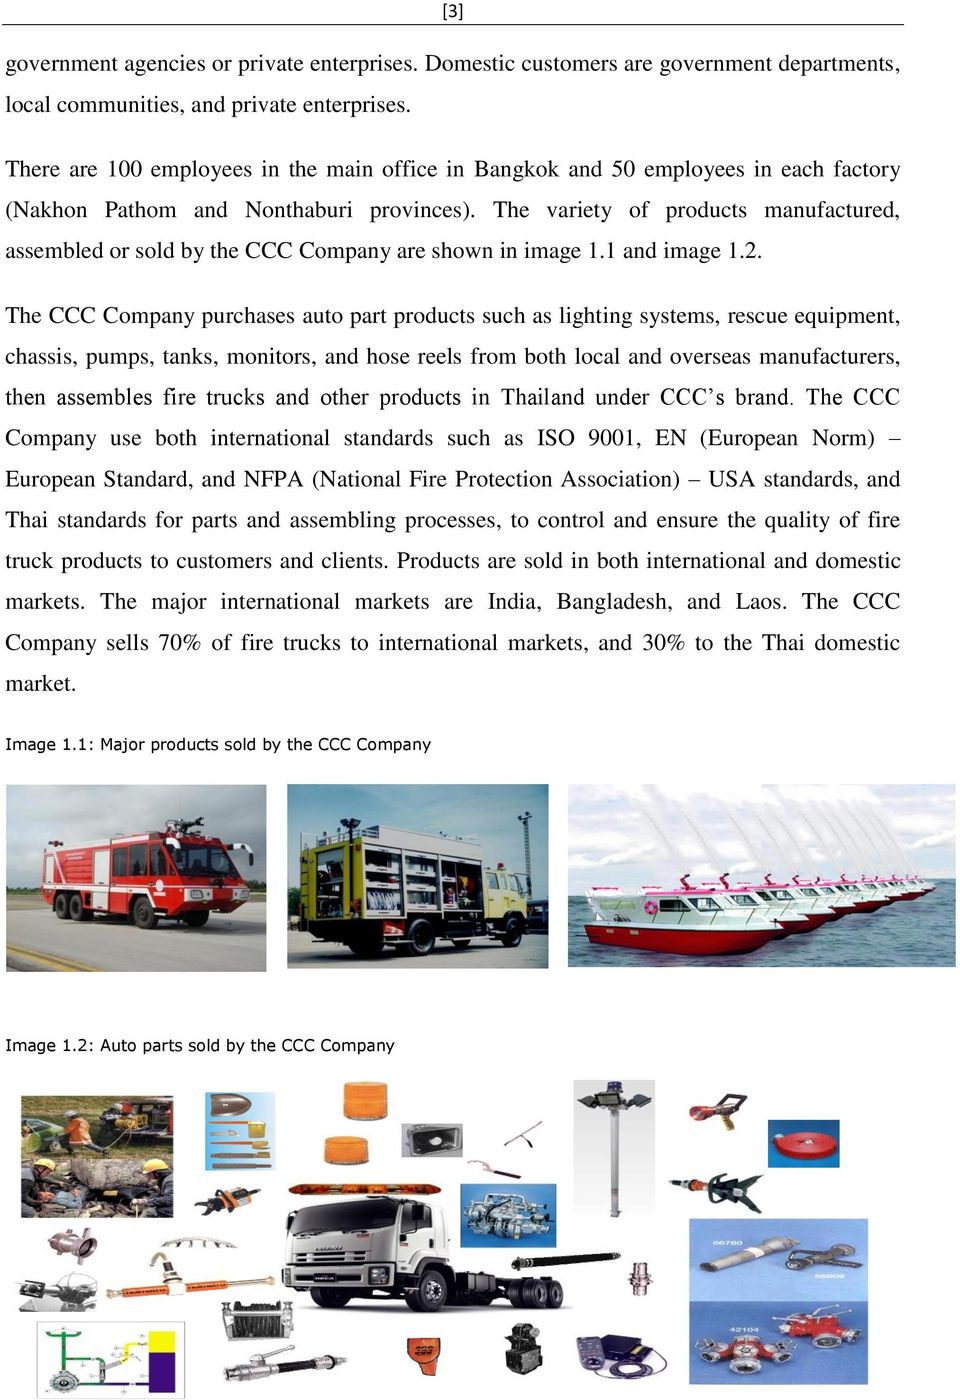 The variety of products manufactured, assembled or sold by the CCC Company are shown in image 1.1 and image 1.2.